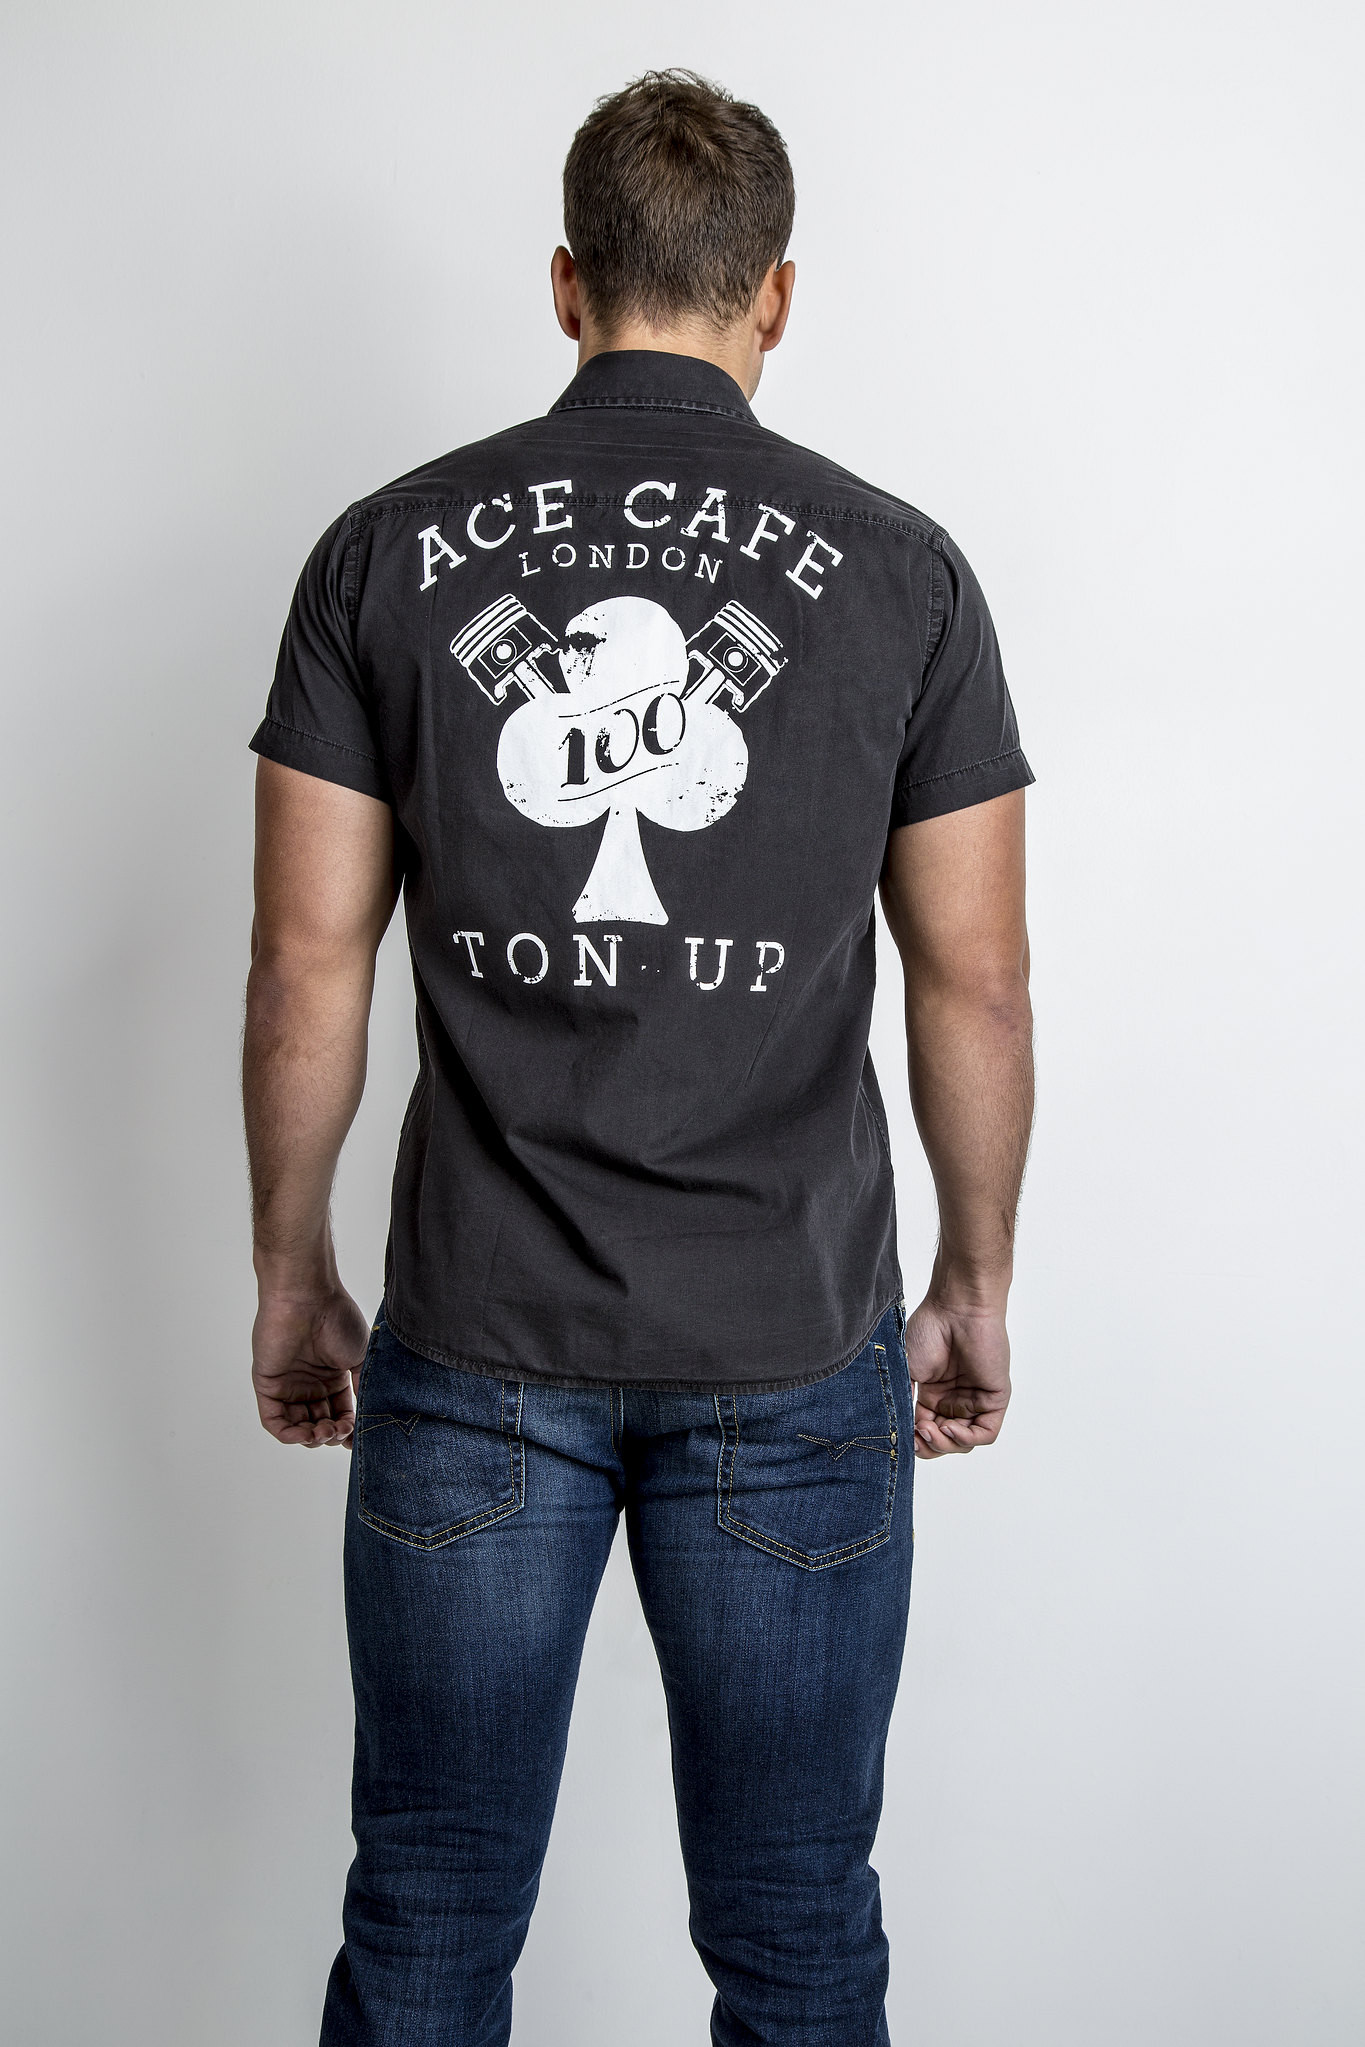 RT Ace Cafe Ton Up Button Up